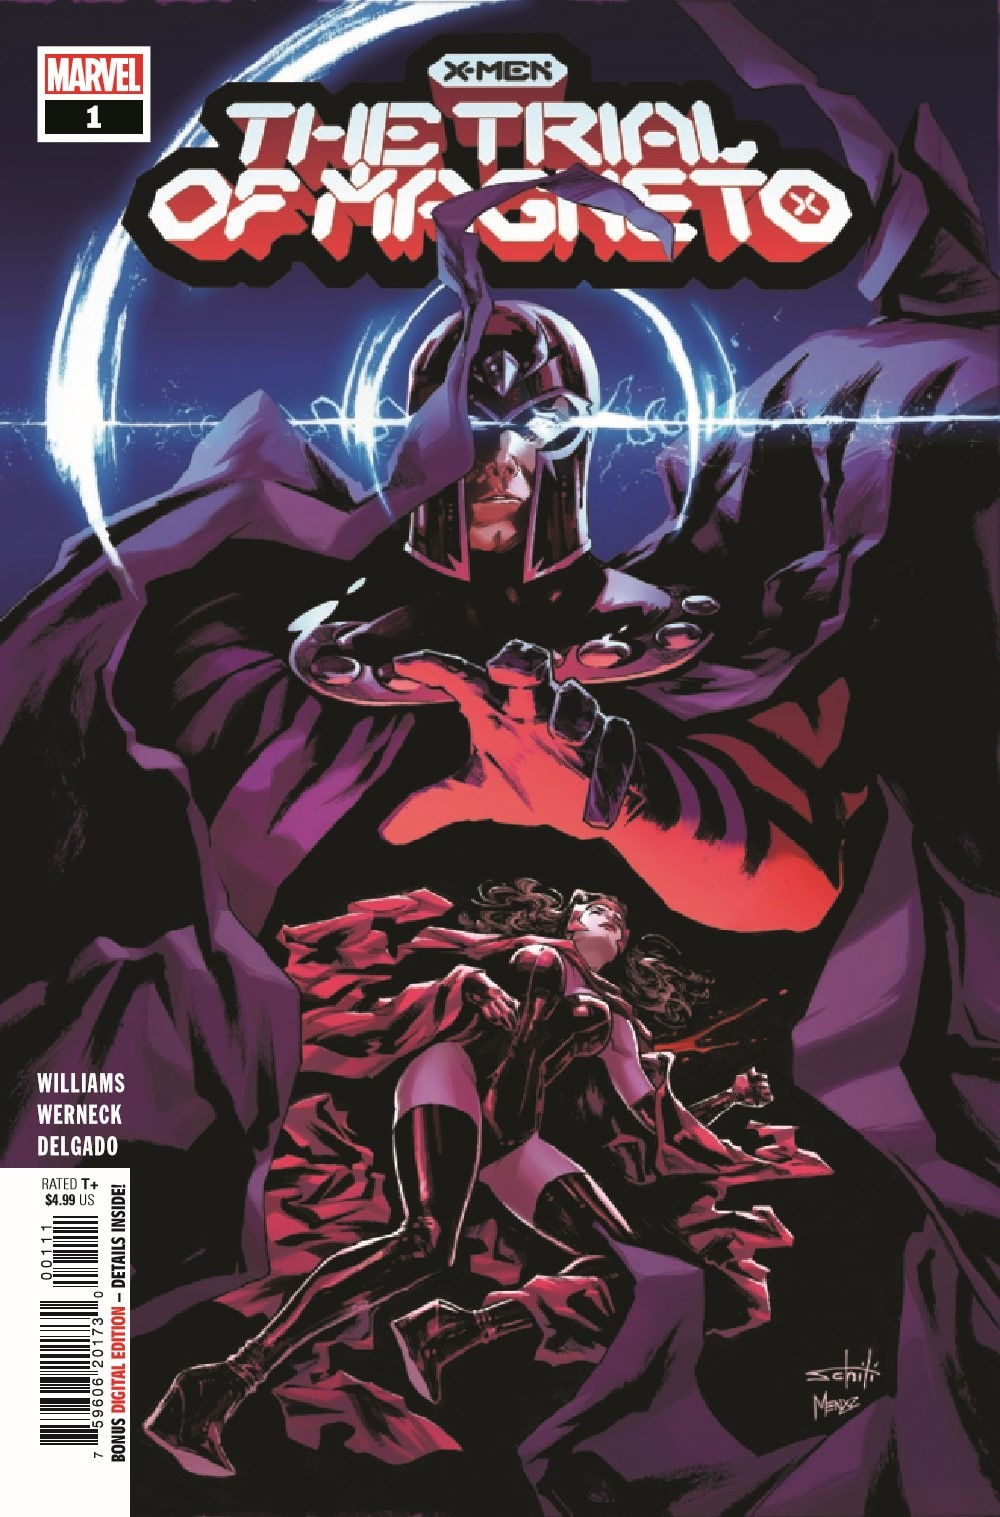 XMENTRIAL2021001_Preview-1 ComicList Previews: X-MEN THE TRIAL OF MAGNETO #1 (OF 5)